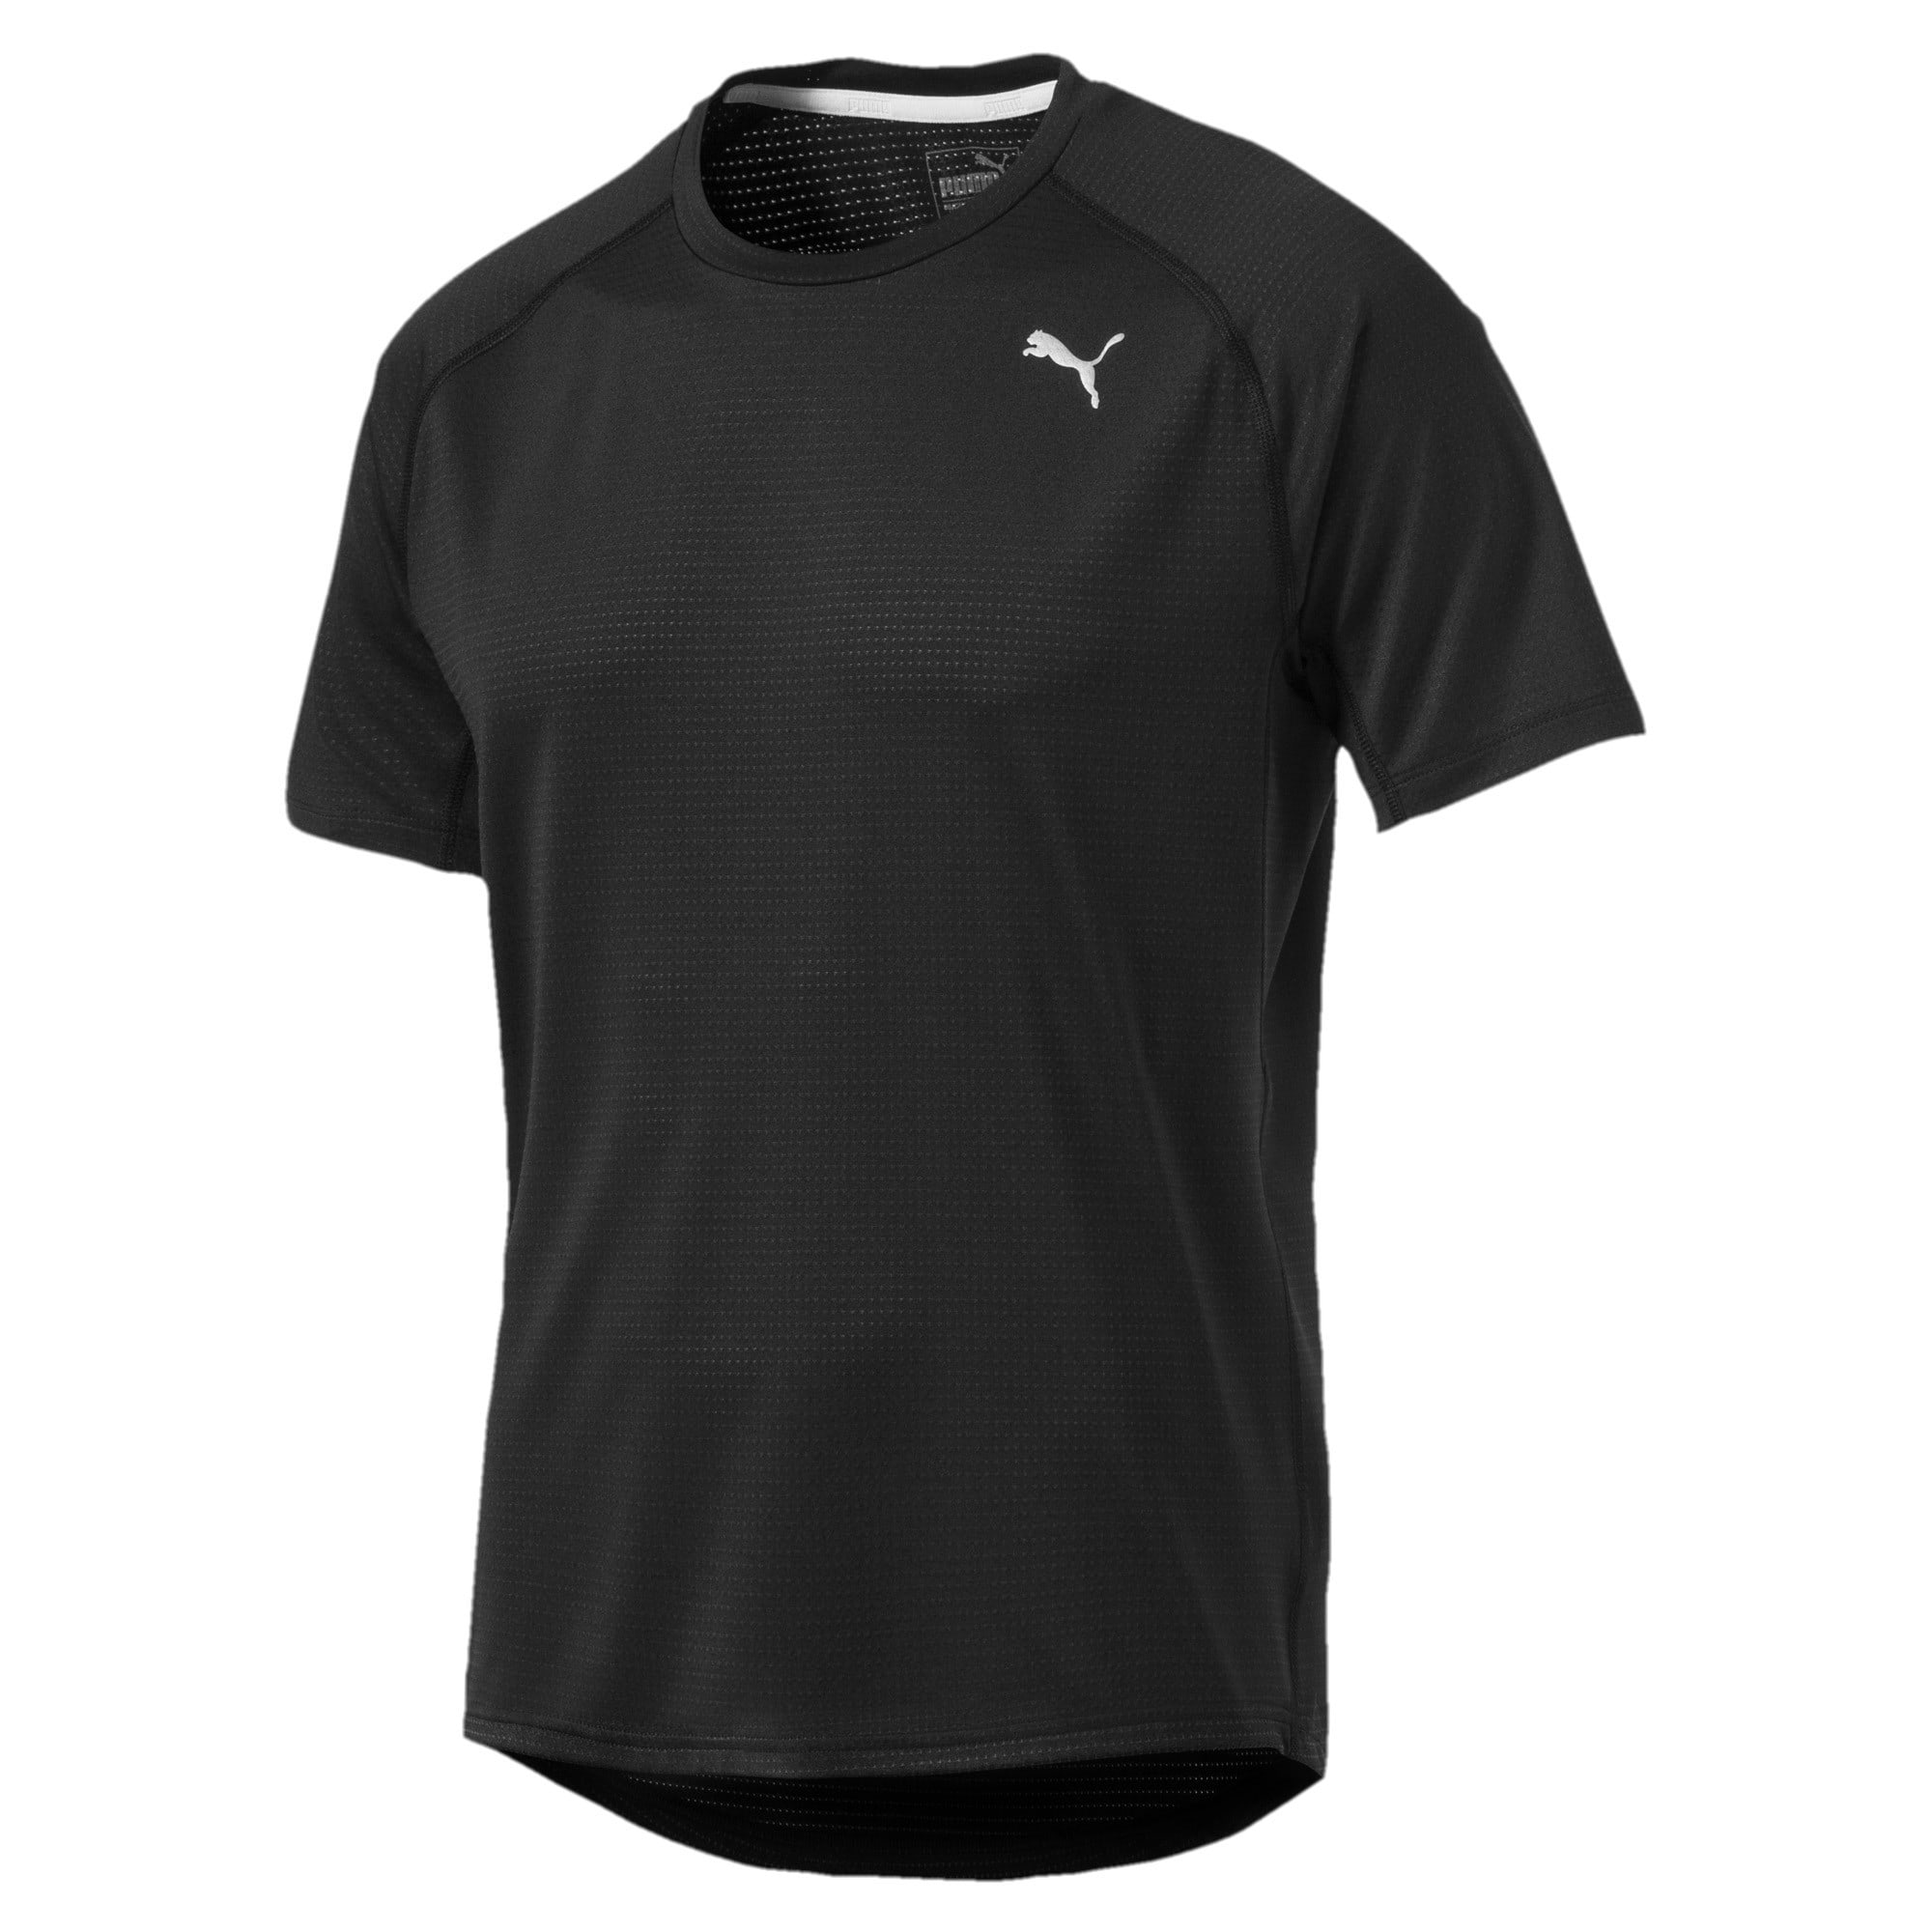 Thumbnail 4 of Running Men's Speed T-Shirt, Puma Black Heather, medium-IND